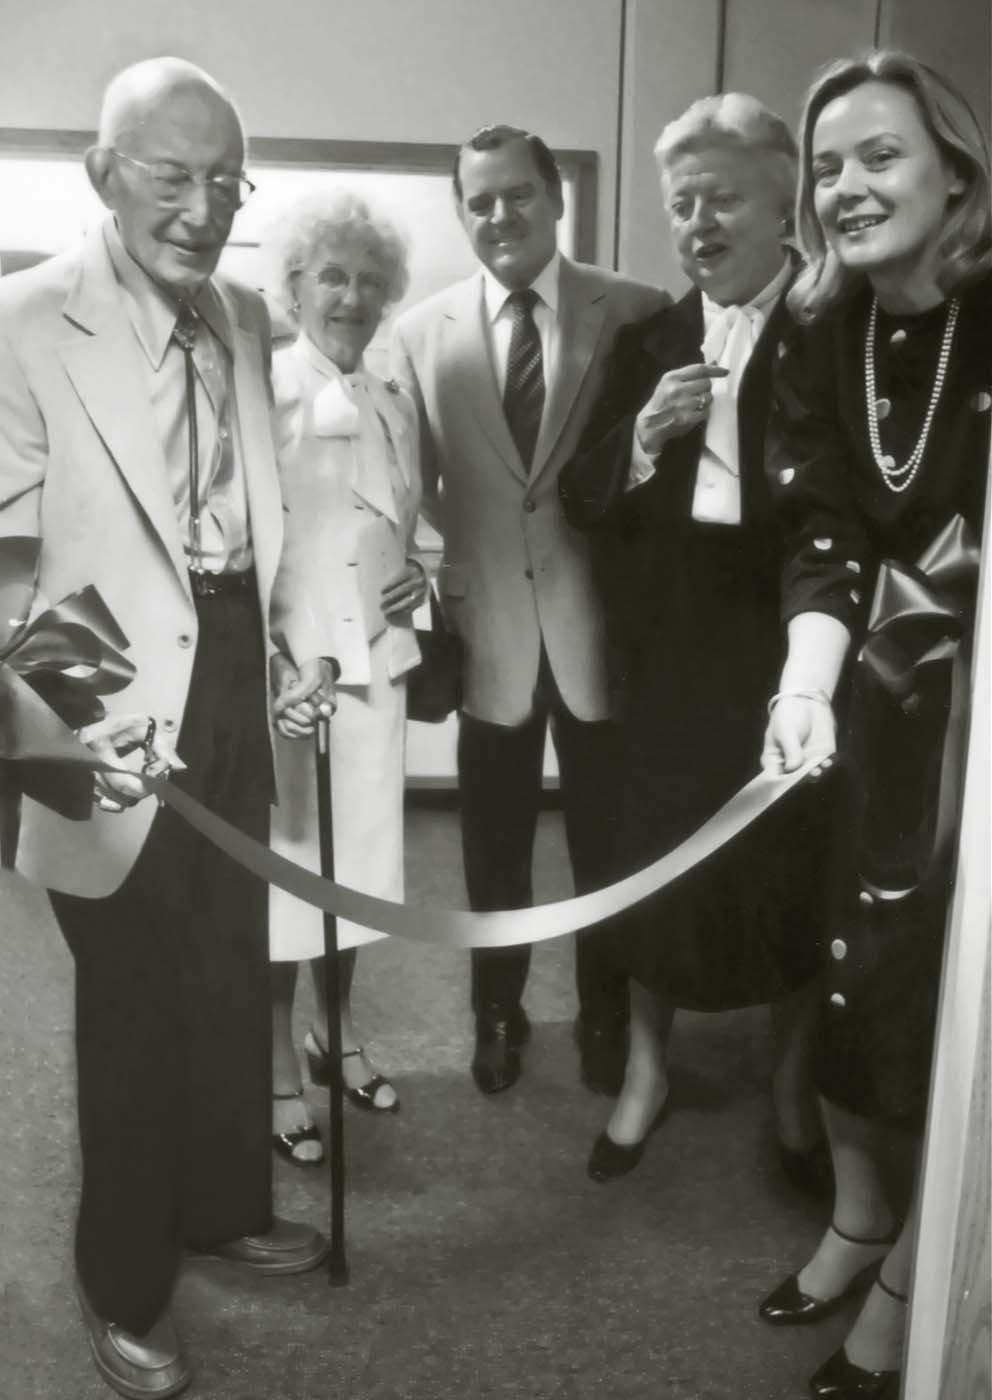 Dr. Harold McCracken, left, cuts the ribbon at the opening of the Buffalo Bill Historical Center's McCracken Research Library on August 15, 1980. He is accompanied, left to right, by Mrs. McCracken, Charles Duncan, Chair of the Center's Board of Trustees, Peg Coe, and Ann Duncan.